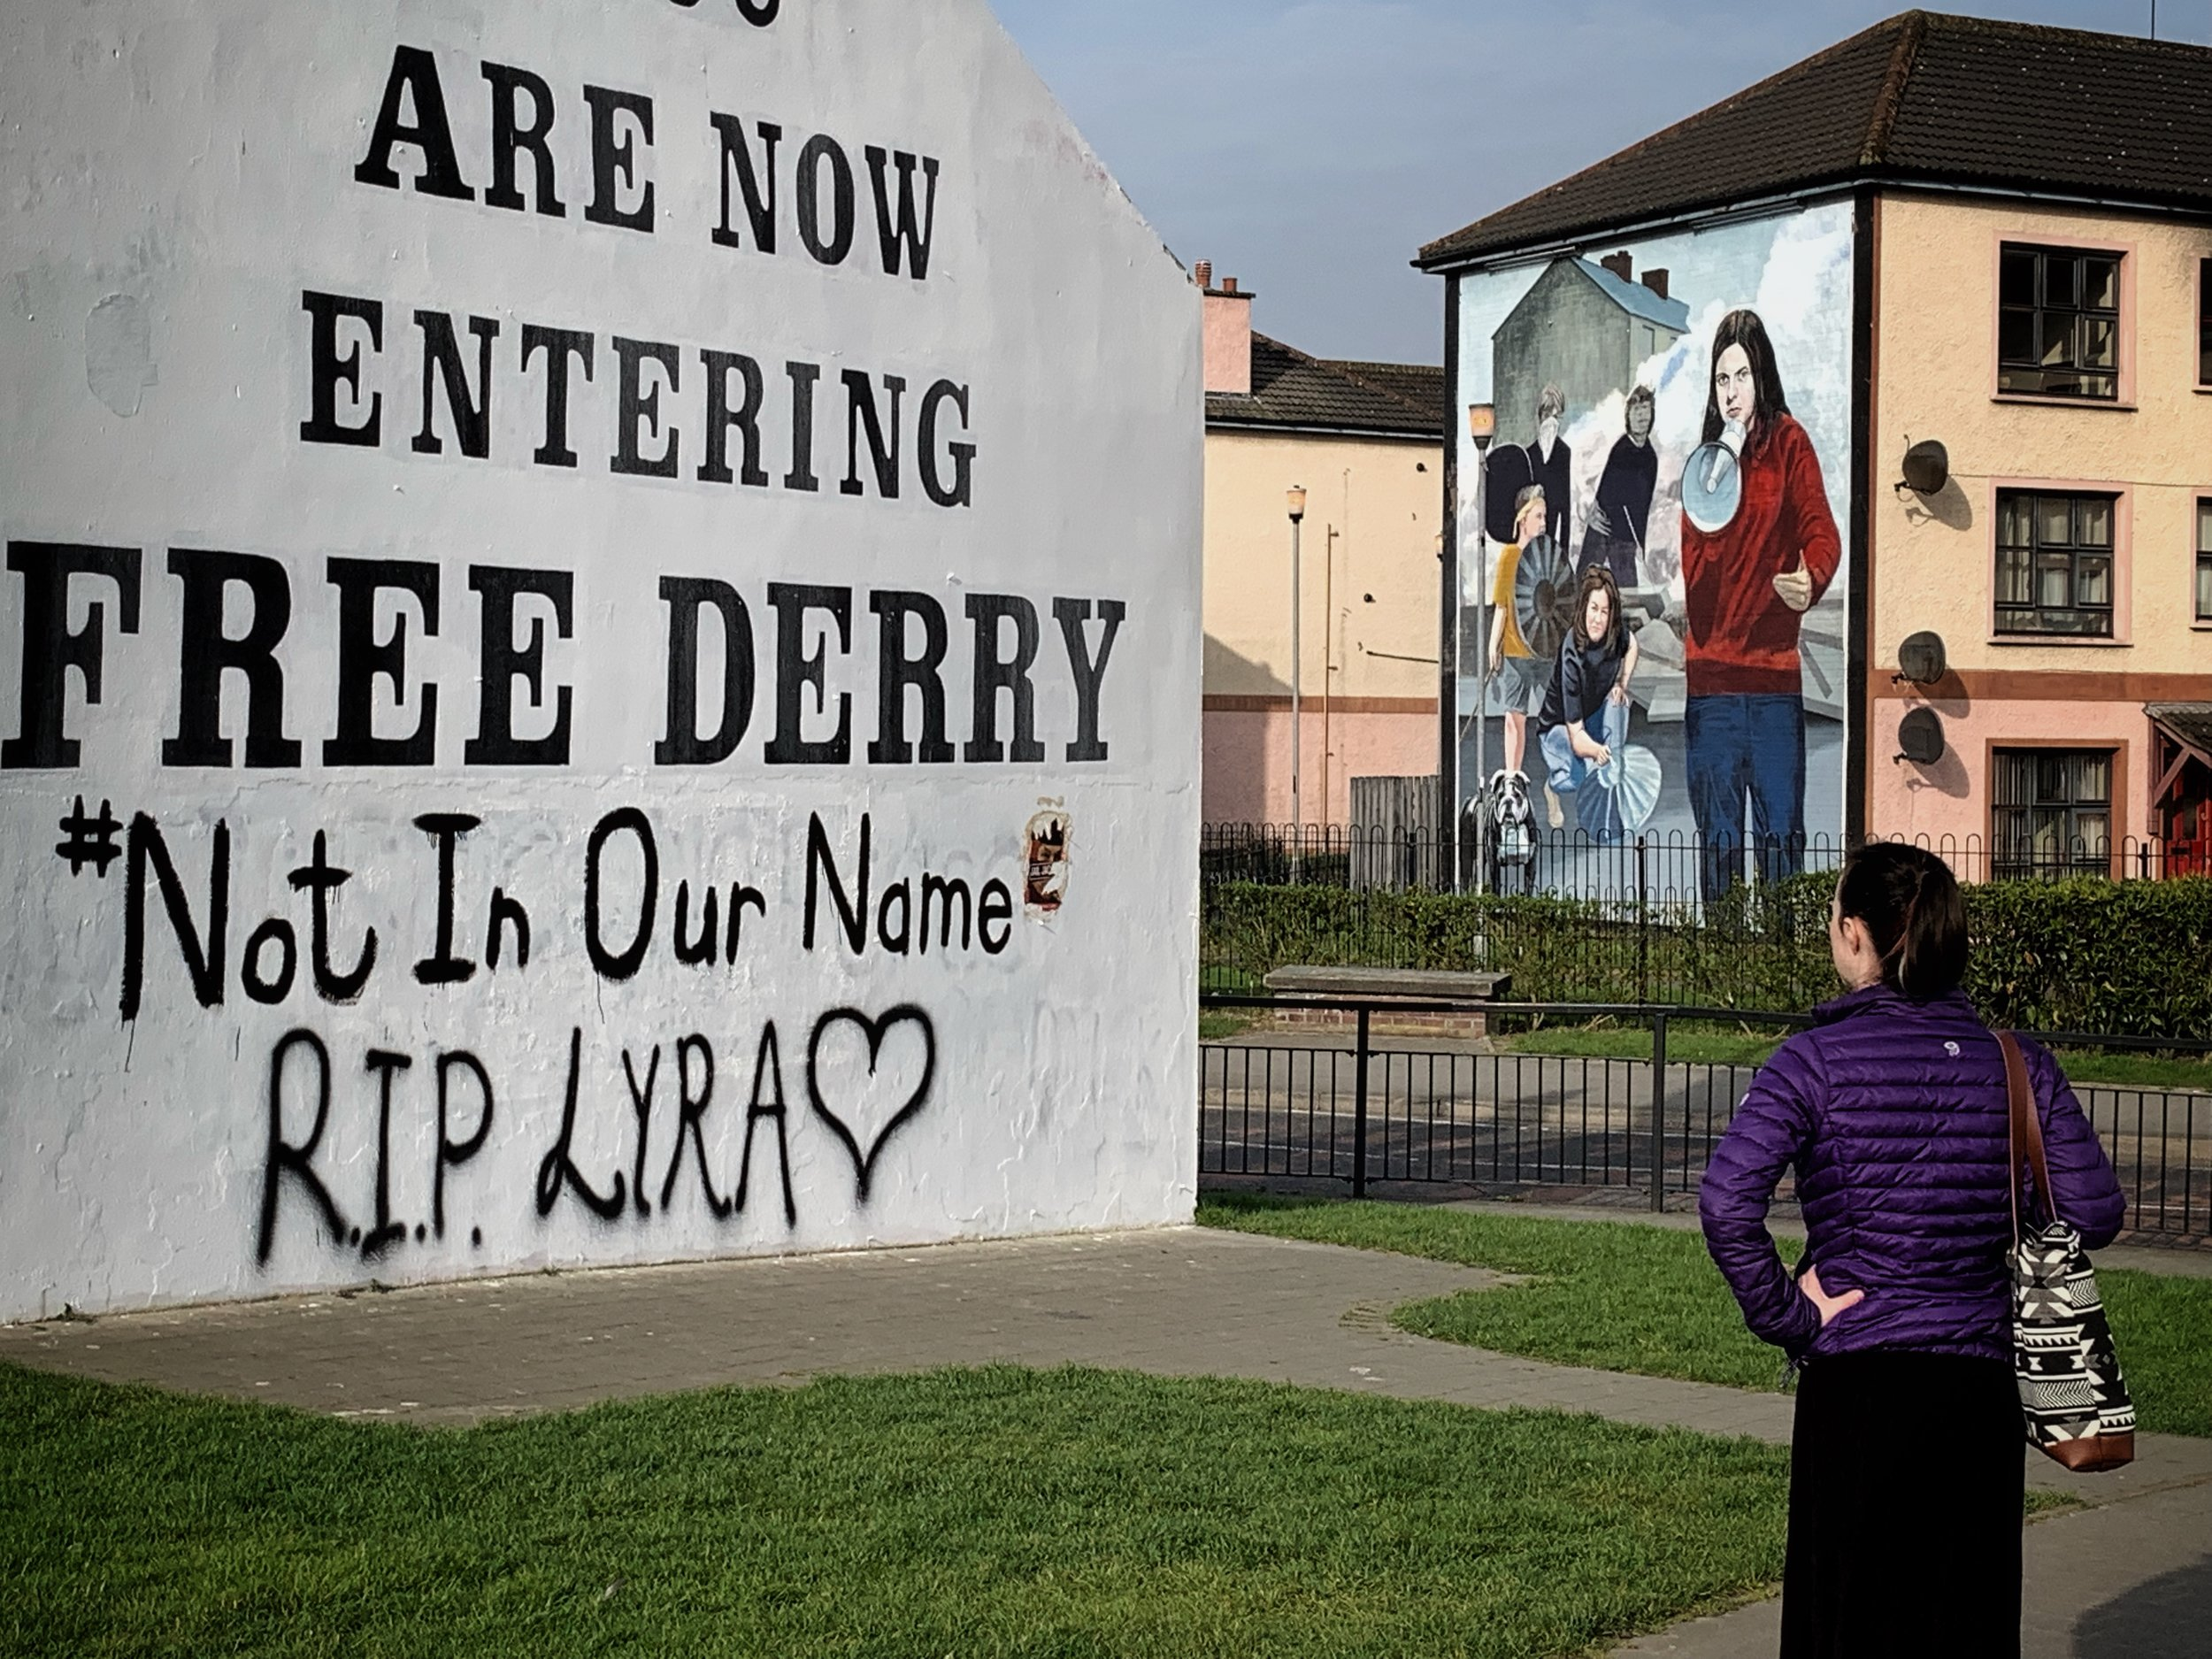 Famous landmark, Free Derry monument, with new graffiti commemorating journalist Lyra McKee, killed April 18, 2019. My daughter reflecting on the words. Derry, N. Ireland. photo by anne richardson.